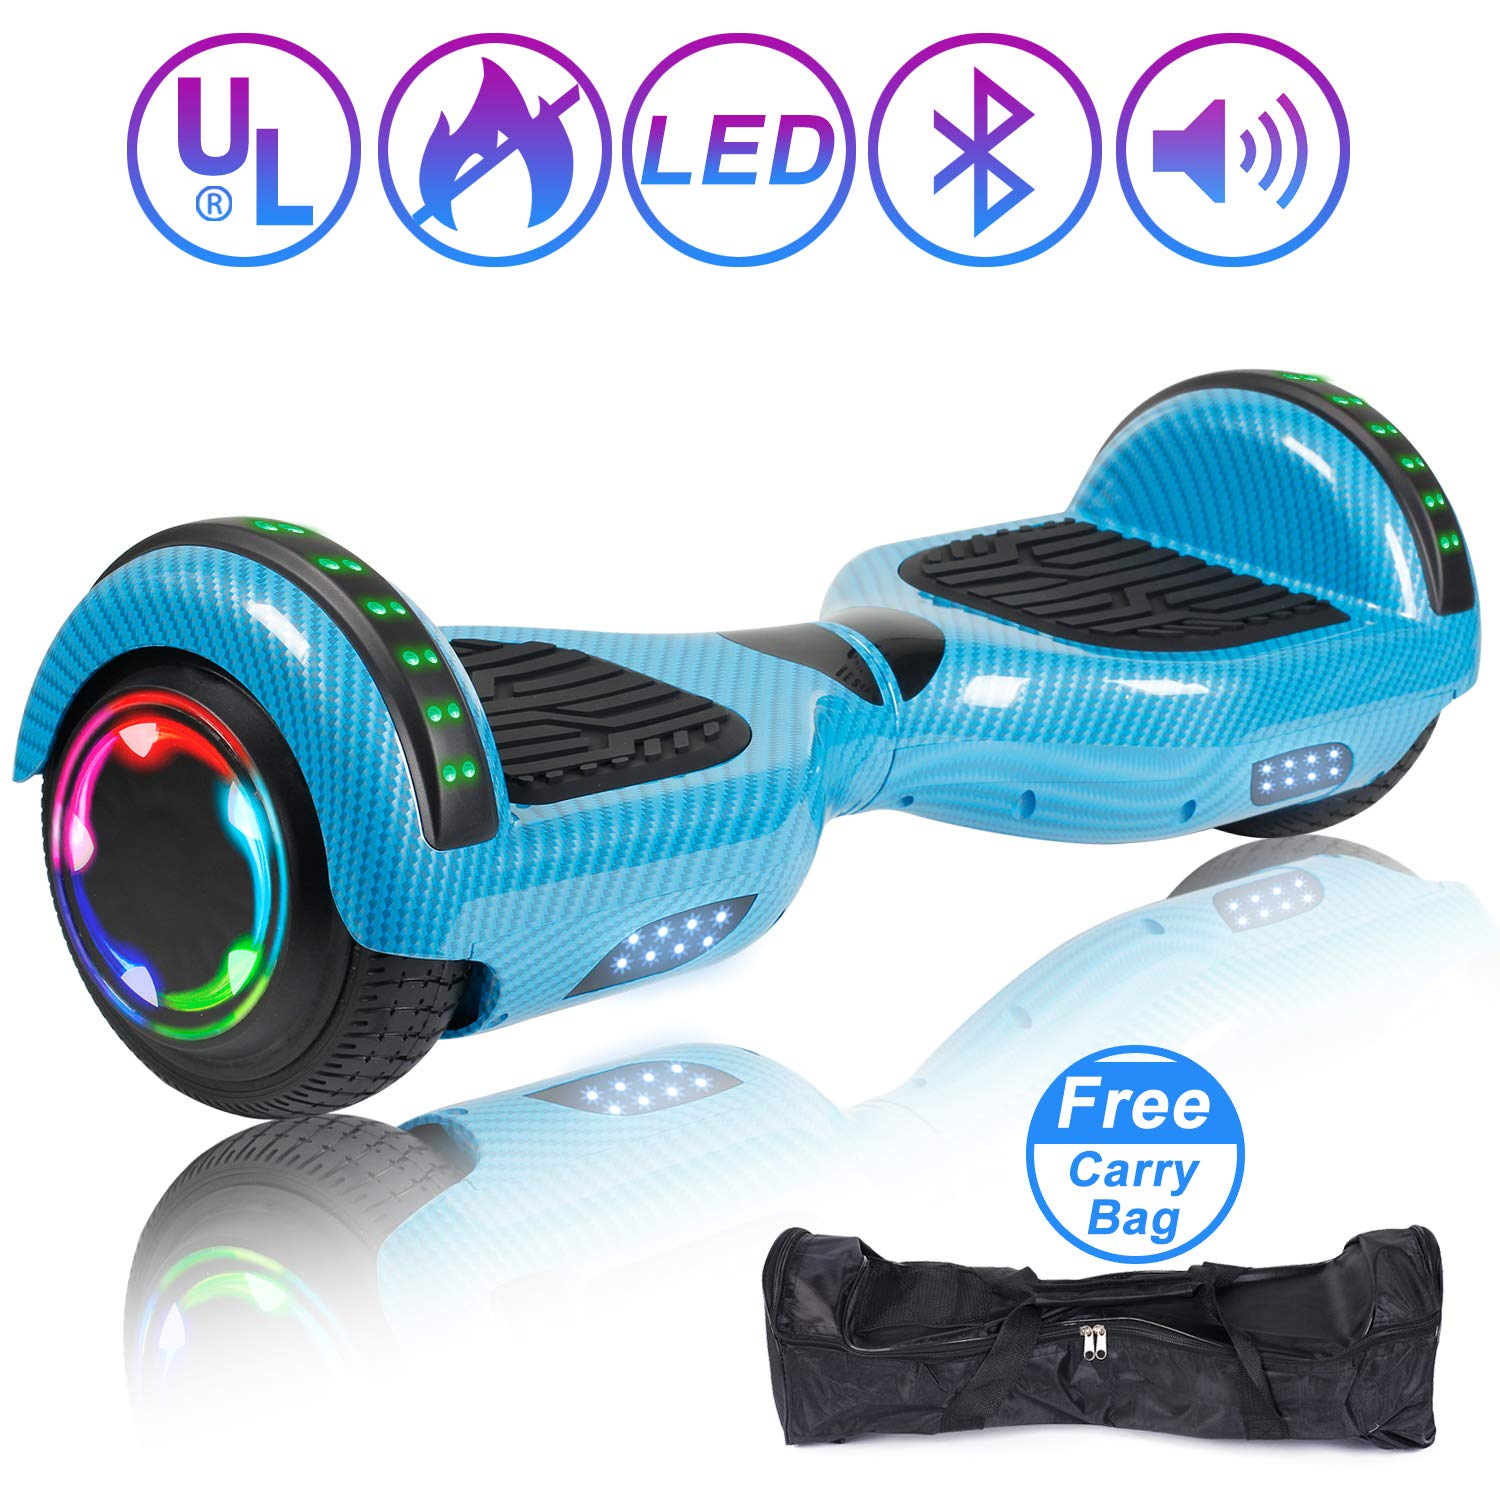 Hoverboard Self Balancing Scooter 6.5'' Two-Wheel Self Balancing Hoverboard with Bluetooth Speaker and LED Lights Electric Scooter for Adult Kids Gift UL 2272 Certified Fun Edition - Carbon Blue